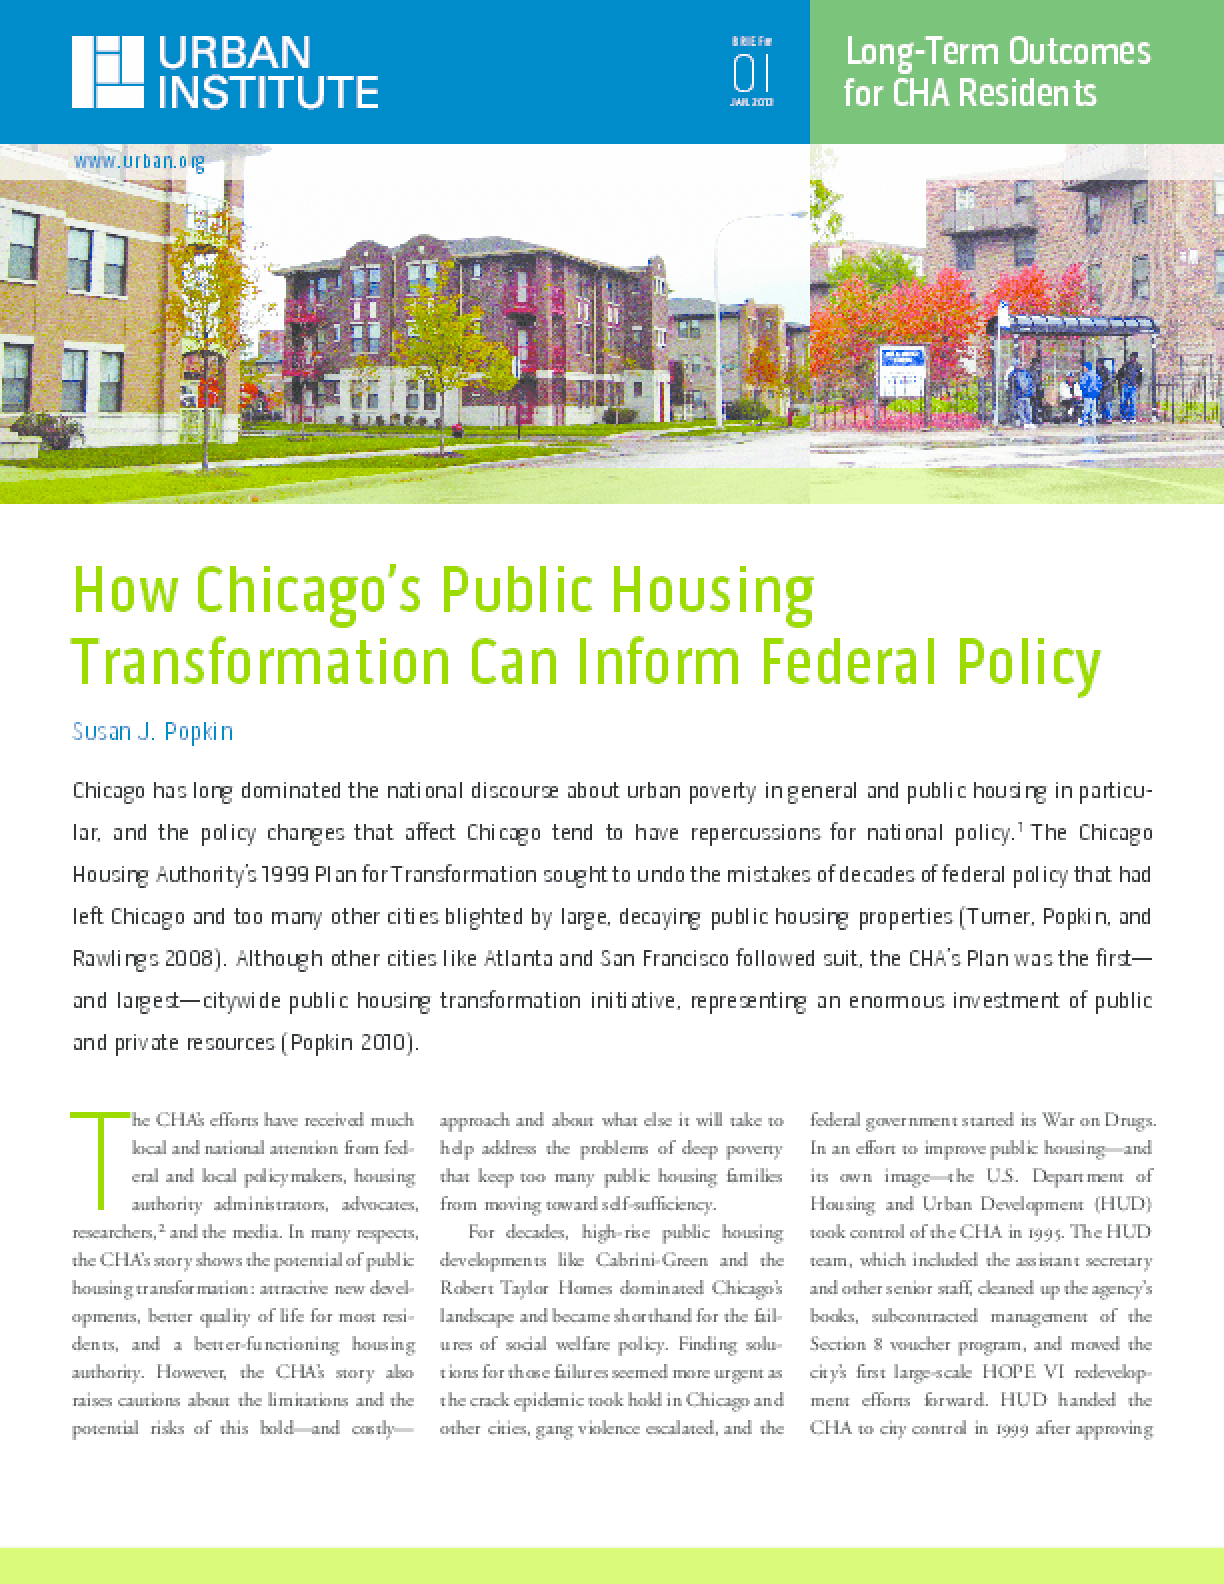 How Chicago's Public Housing Transformation Can Inform Federal Policy